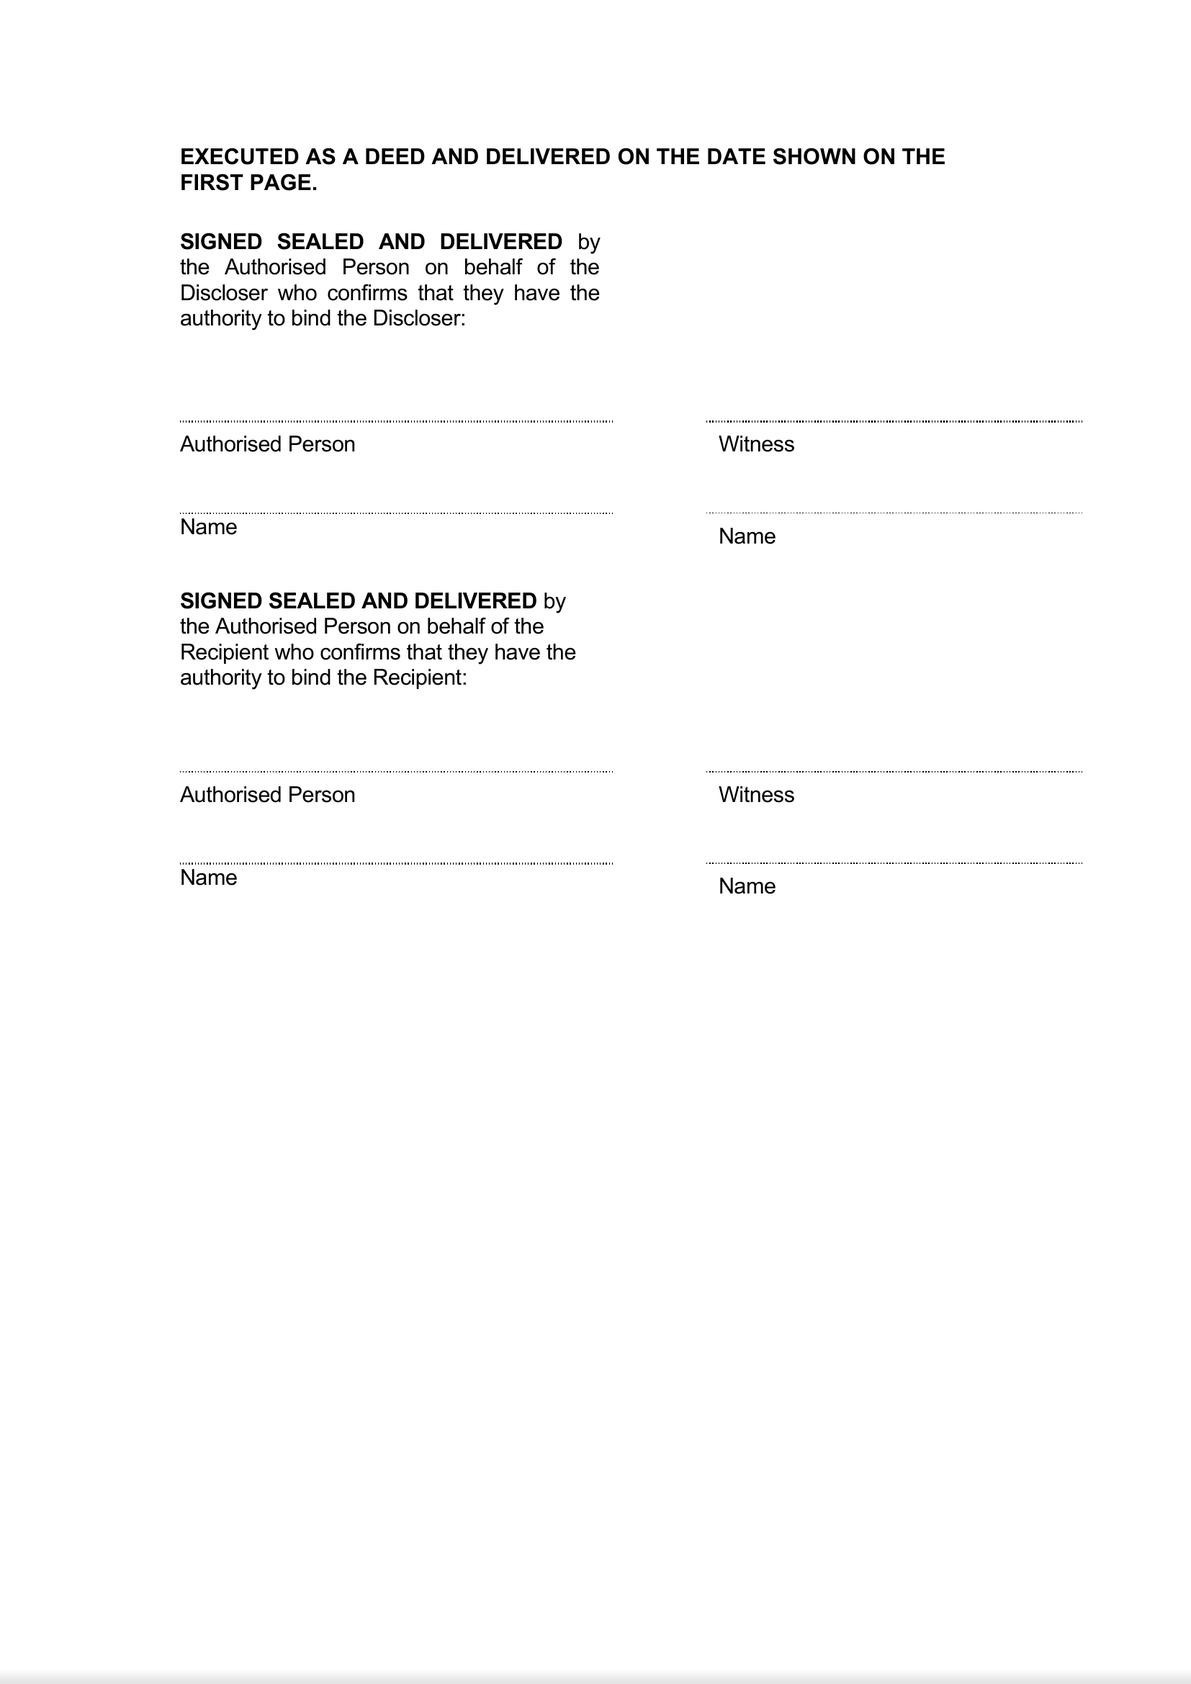 Confidentiality [One Way] and Privacy Deed - Long Form - Variables in a table-1